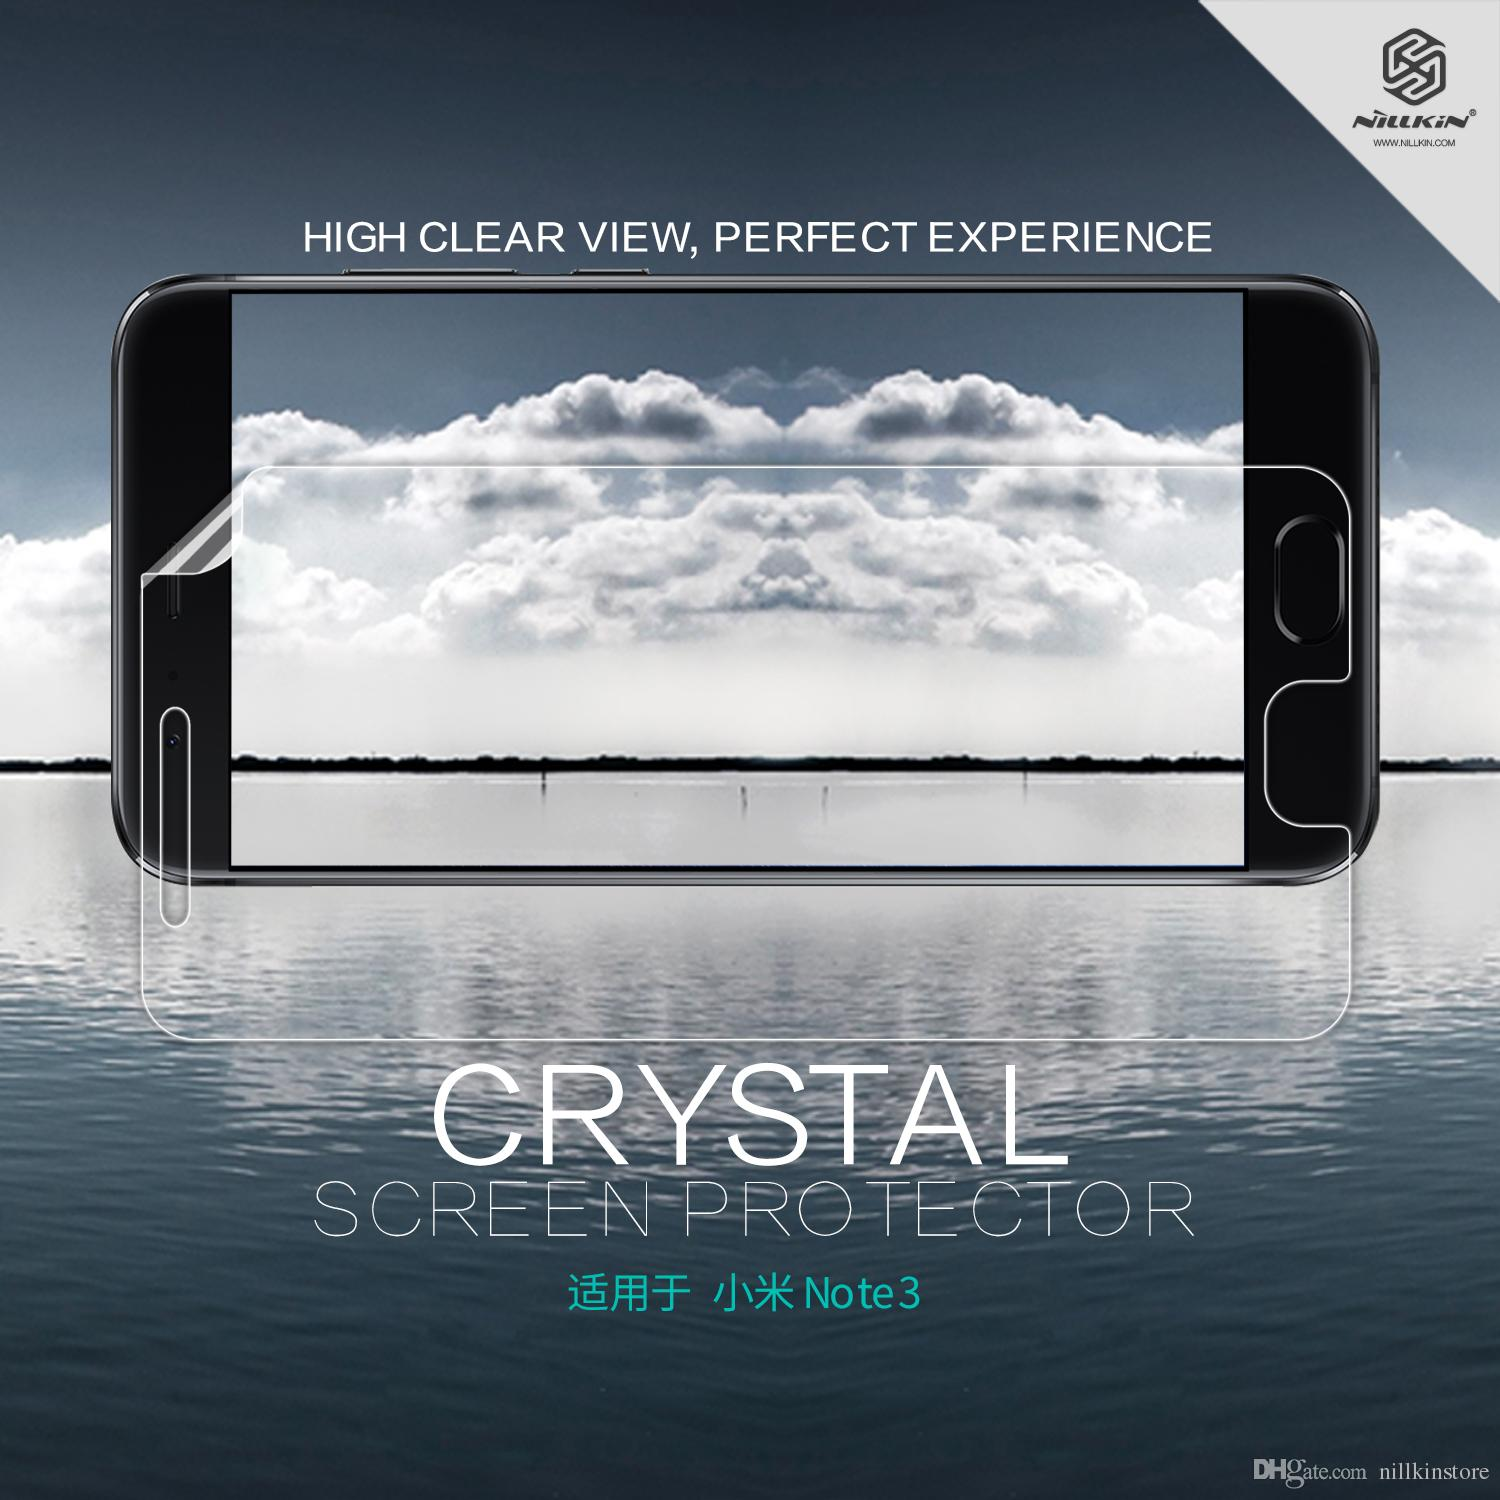 Nillkin Crystal Super Clear Screen Protector Xiaomi Mi Note 3 Anti Fingerprint Protective Xiaomi Mi Note 3 Best Anti Glare Screen Protector Best Cell